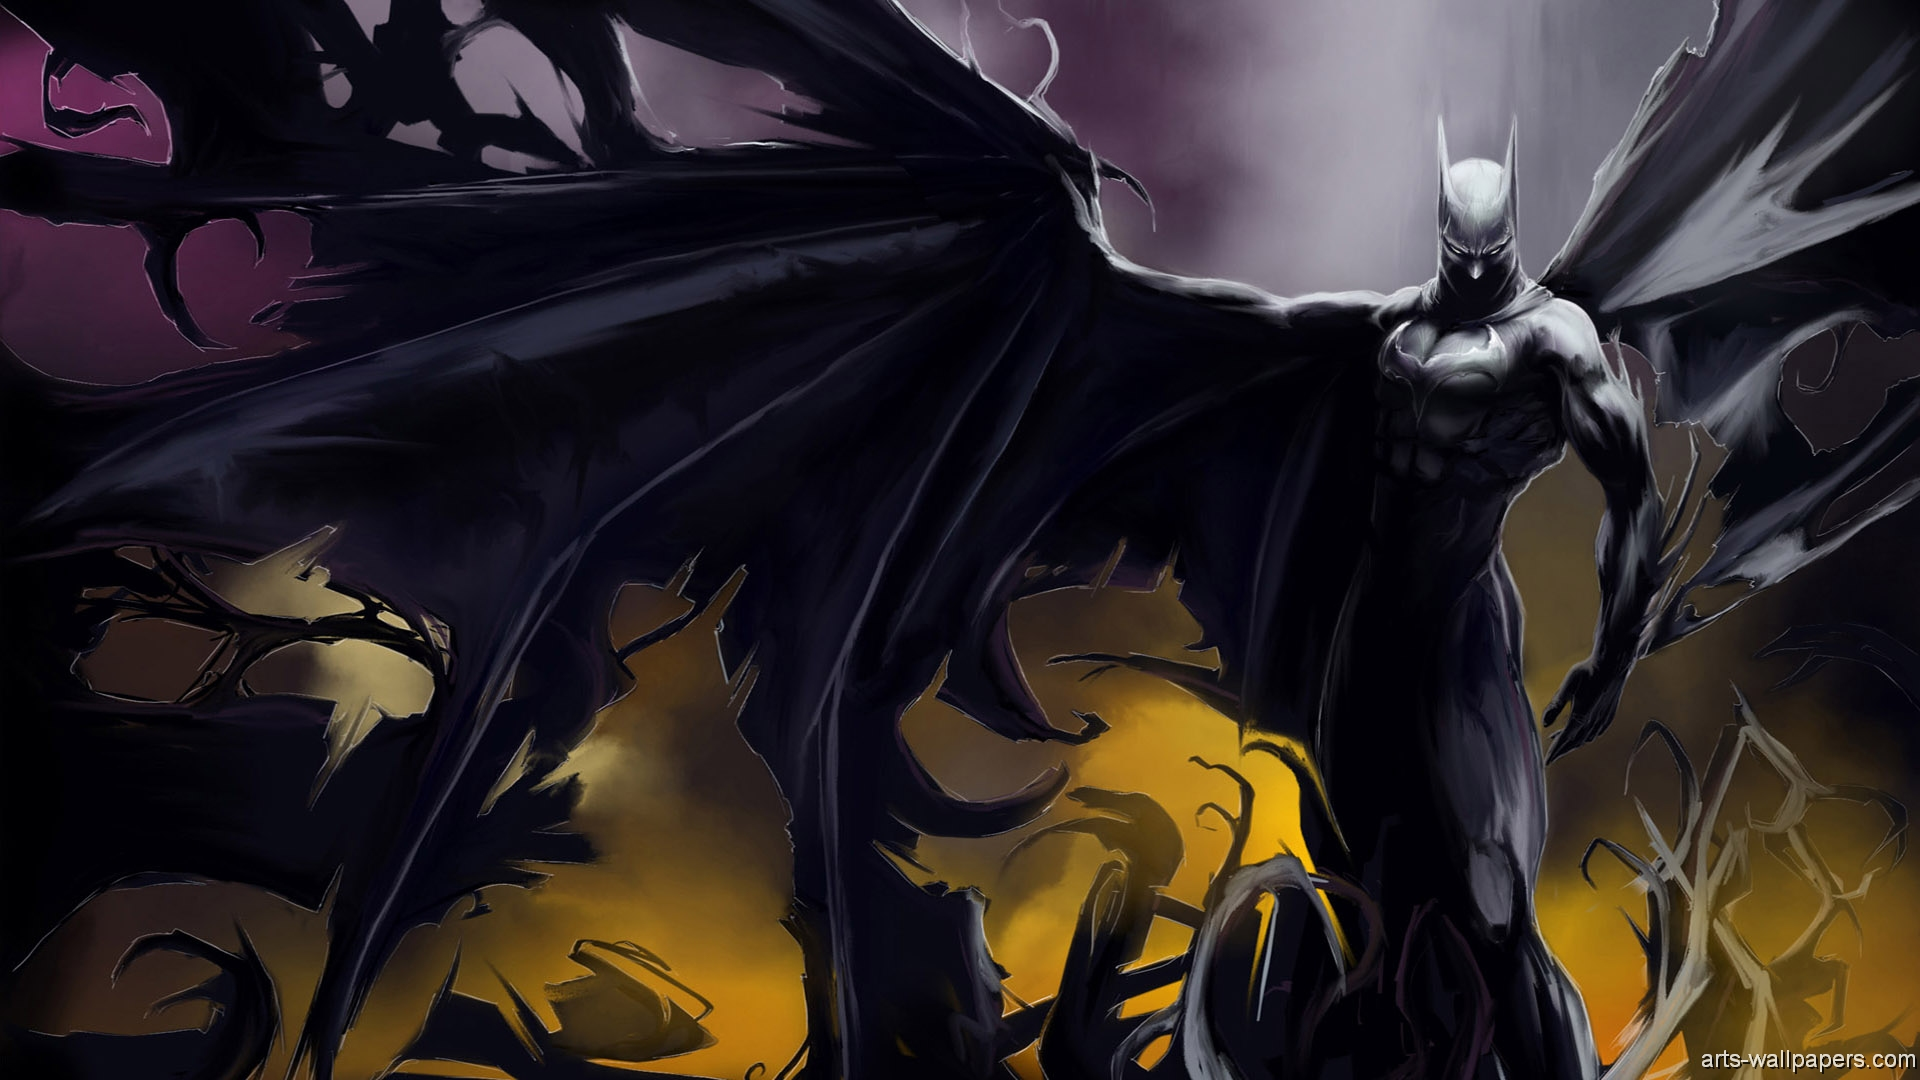 Hd wallpaper games - Video Game Prints And Posters Buy A Poster